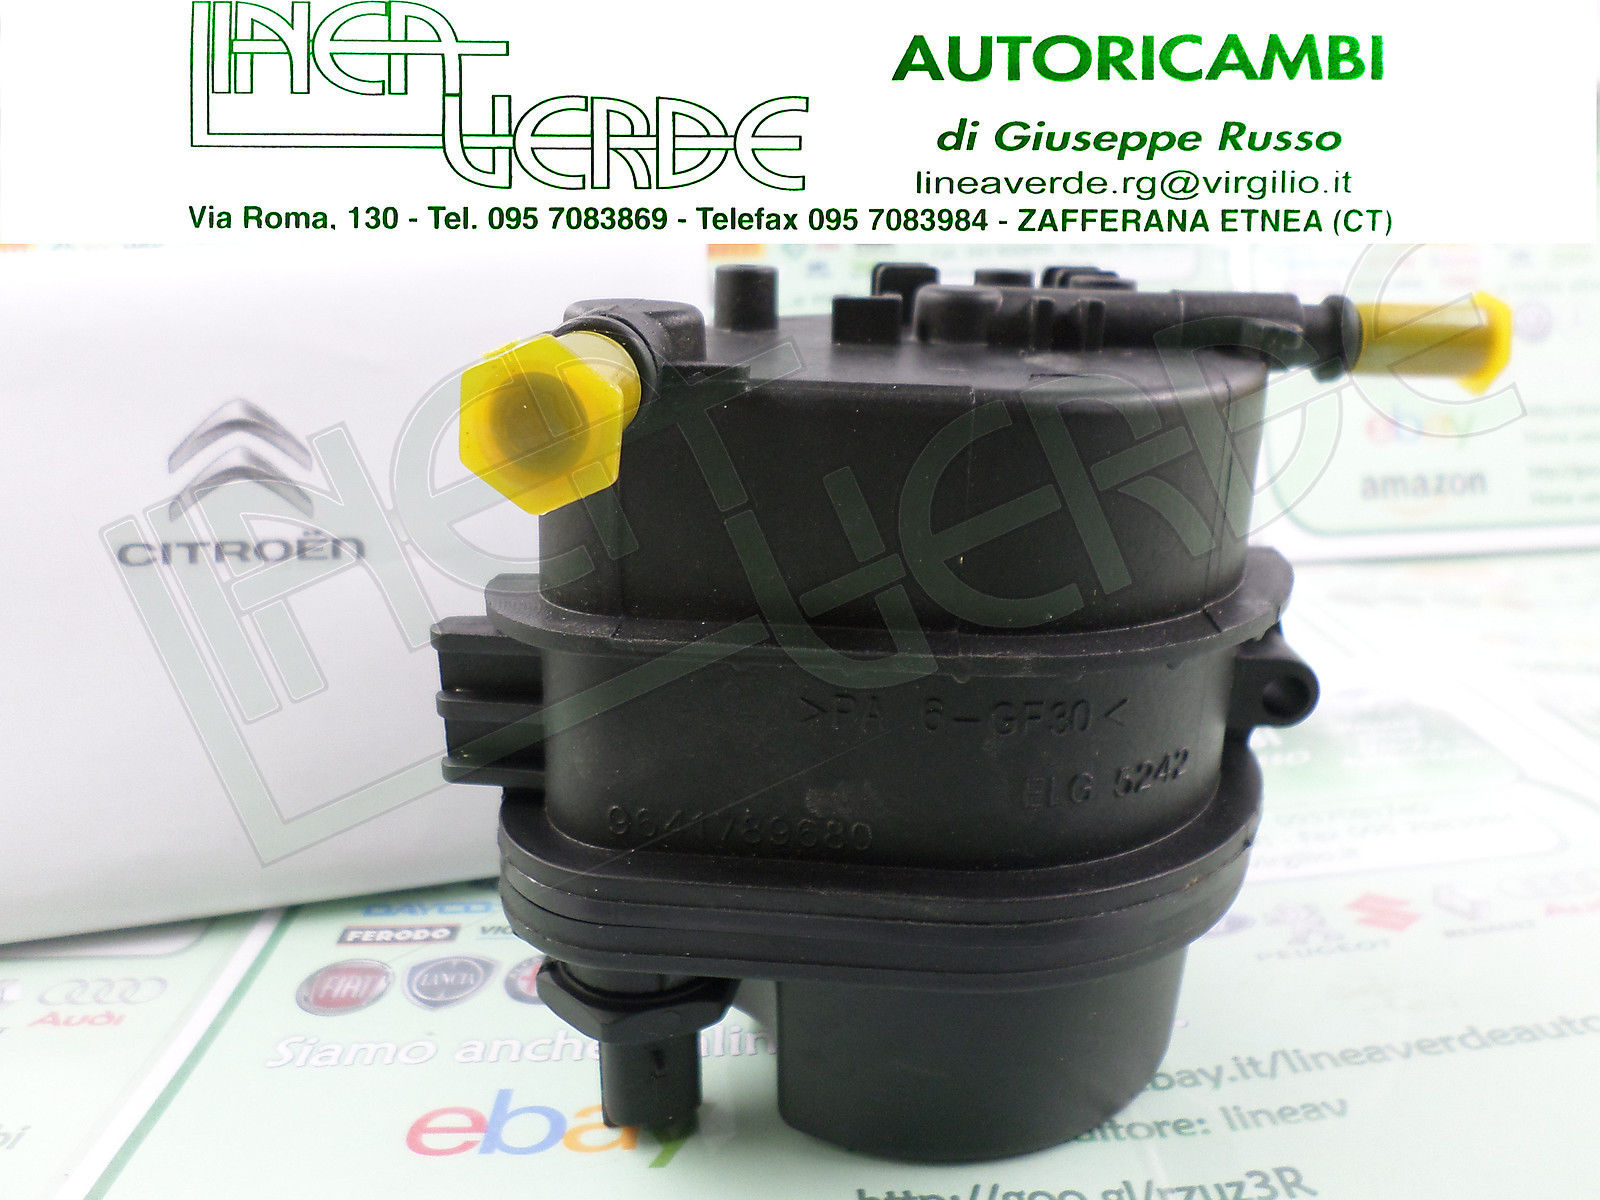 Diesel Fuel Filter for CITROEN C3 1.4 /& 1.6 eHDI /& HDI from 2010 to 2016 BOSCH